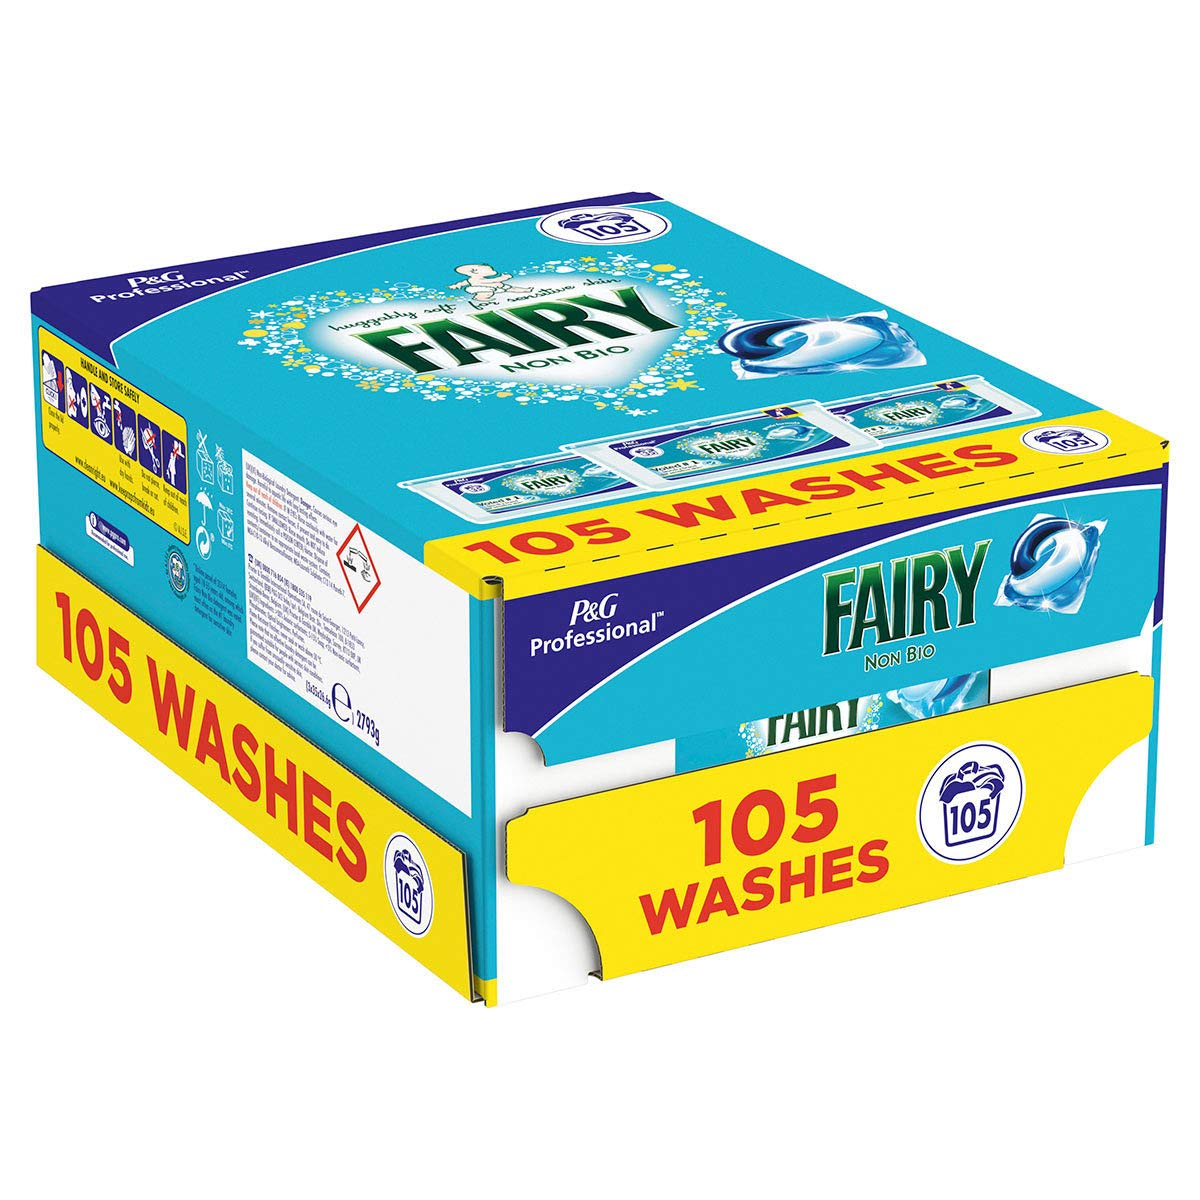 Fairy Non Bio Pods - Washing Capsules for Sensitive Skin - Pack of 3 x 35 Pods - 105 Washes